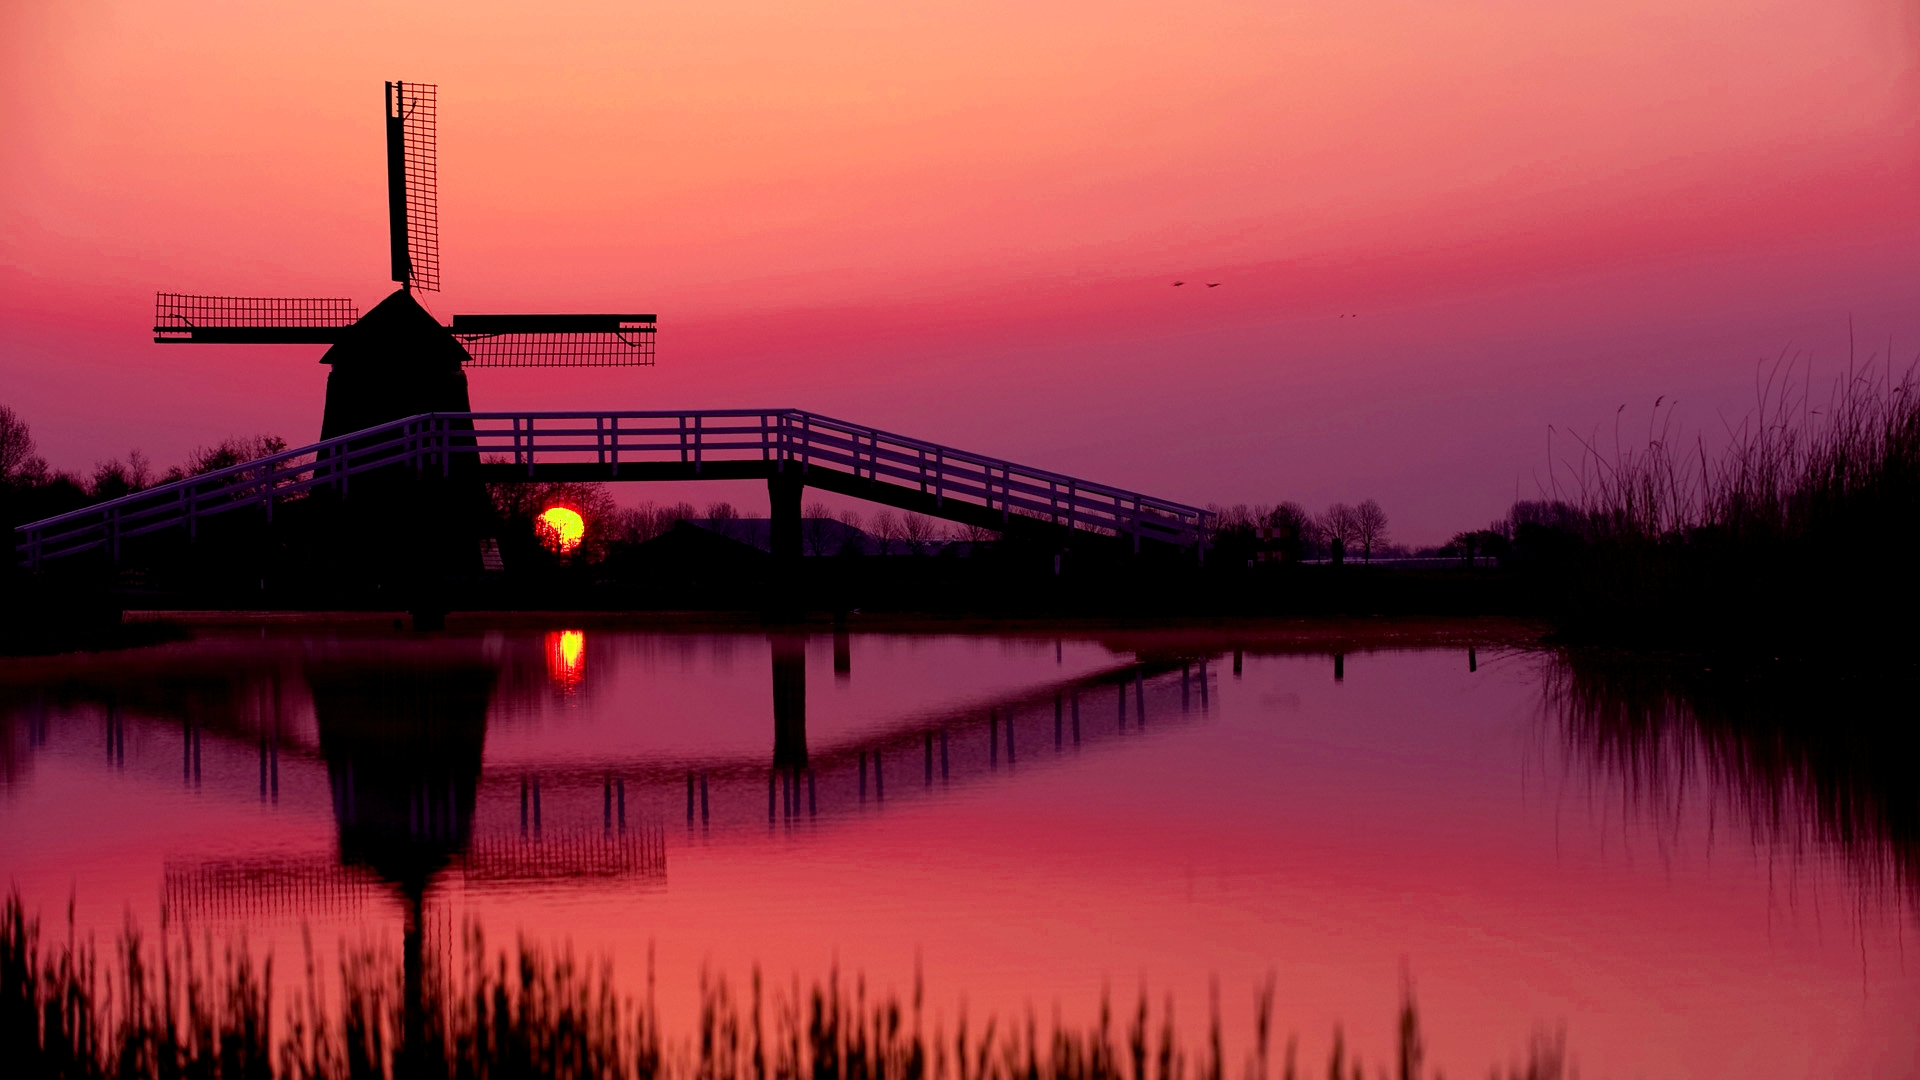 Silhouette of windmill by lake at dusk